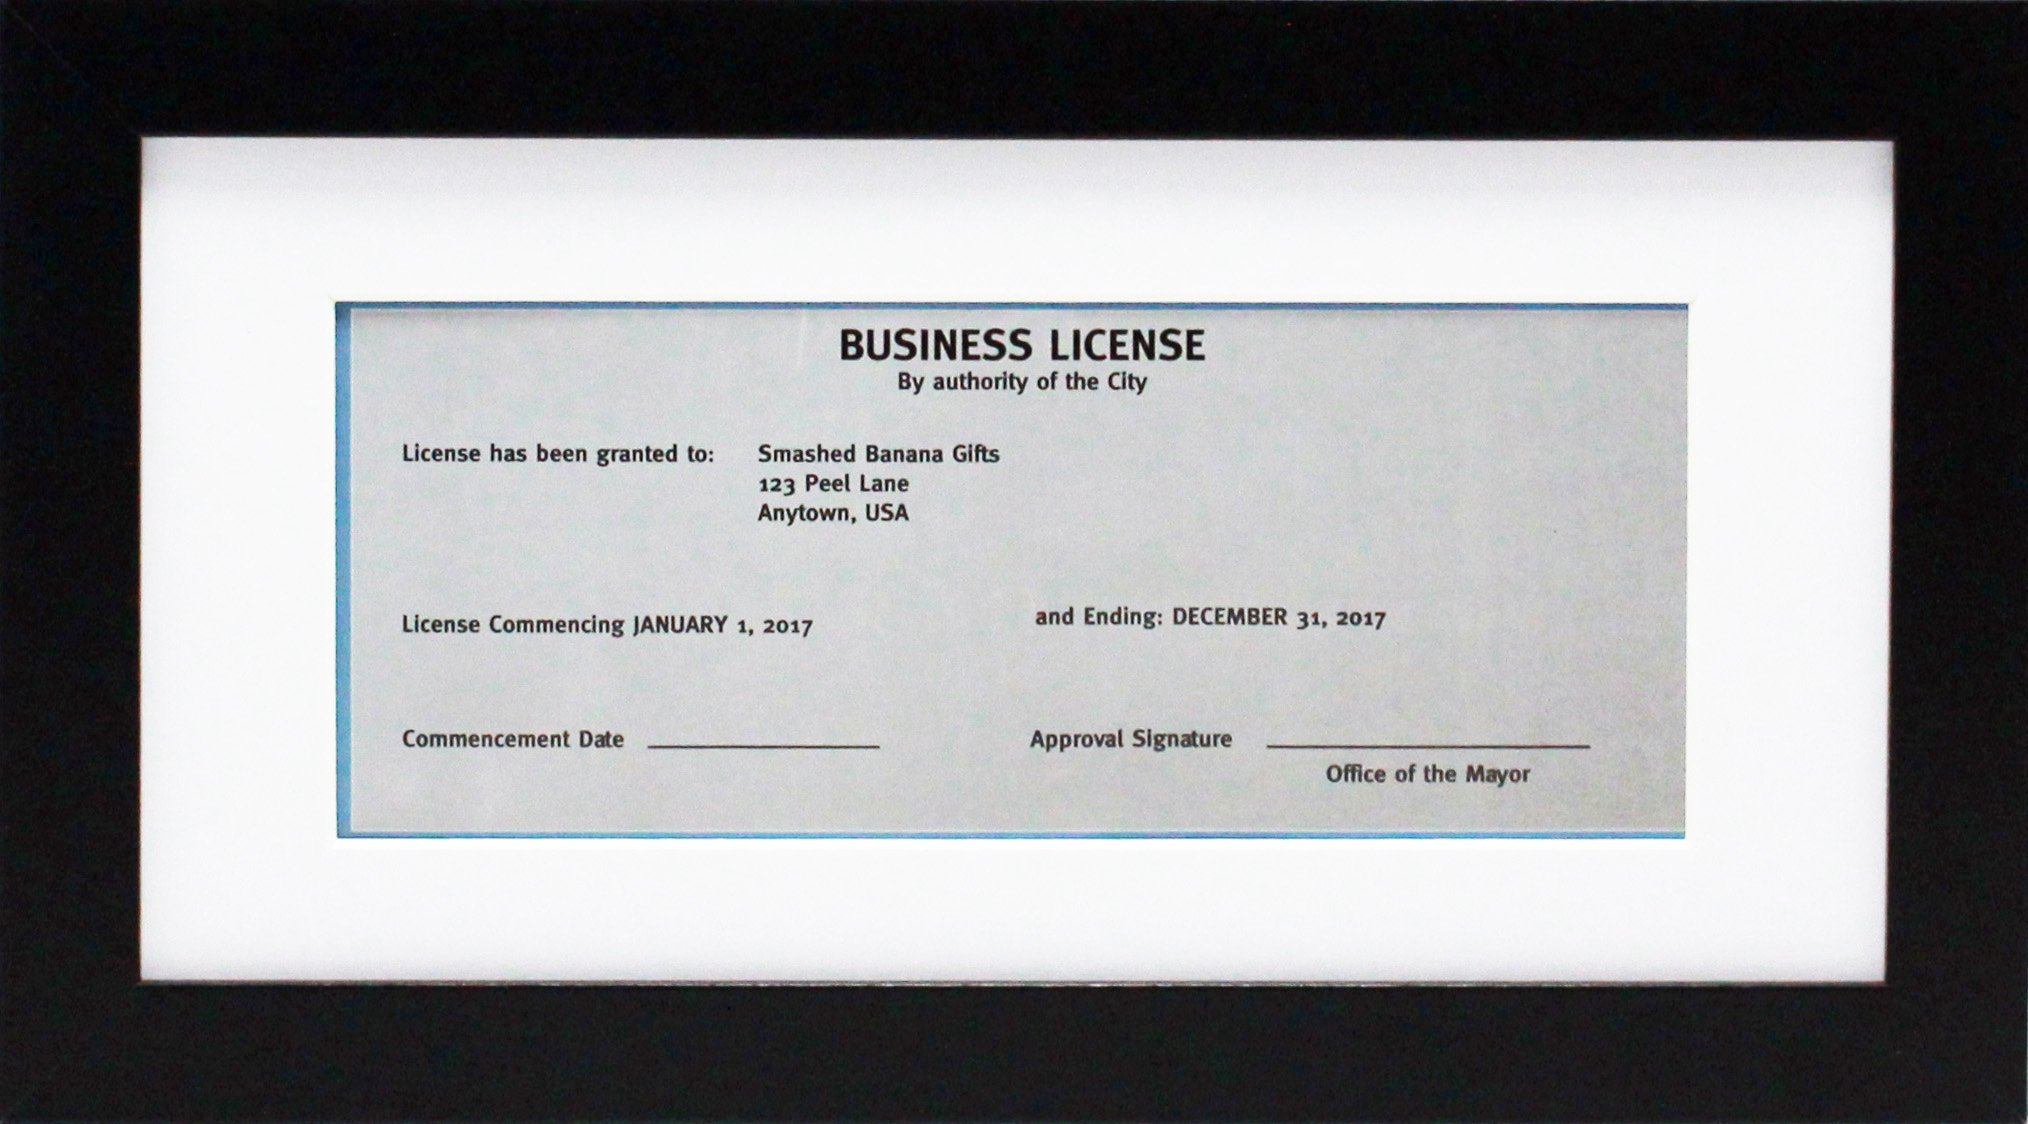 5x10 Black Gallery Business License Frame with 3.5x8 Mat - Wide Molding - Includes Attached Hanging Hardware and Desktop Easel - Display Panoramic Picture or Retail Licenses (5x10) by Smashed Banana